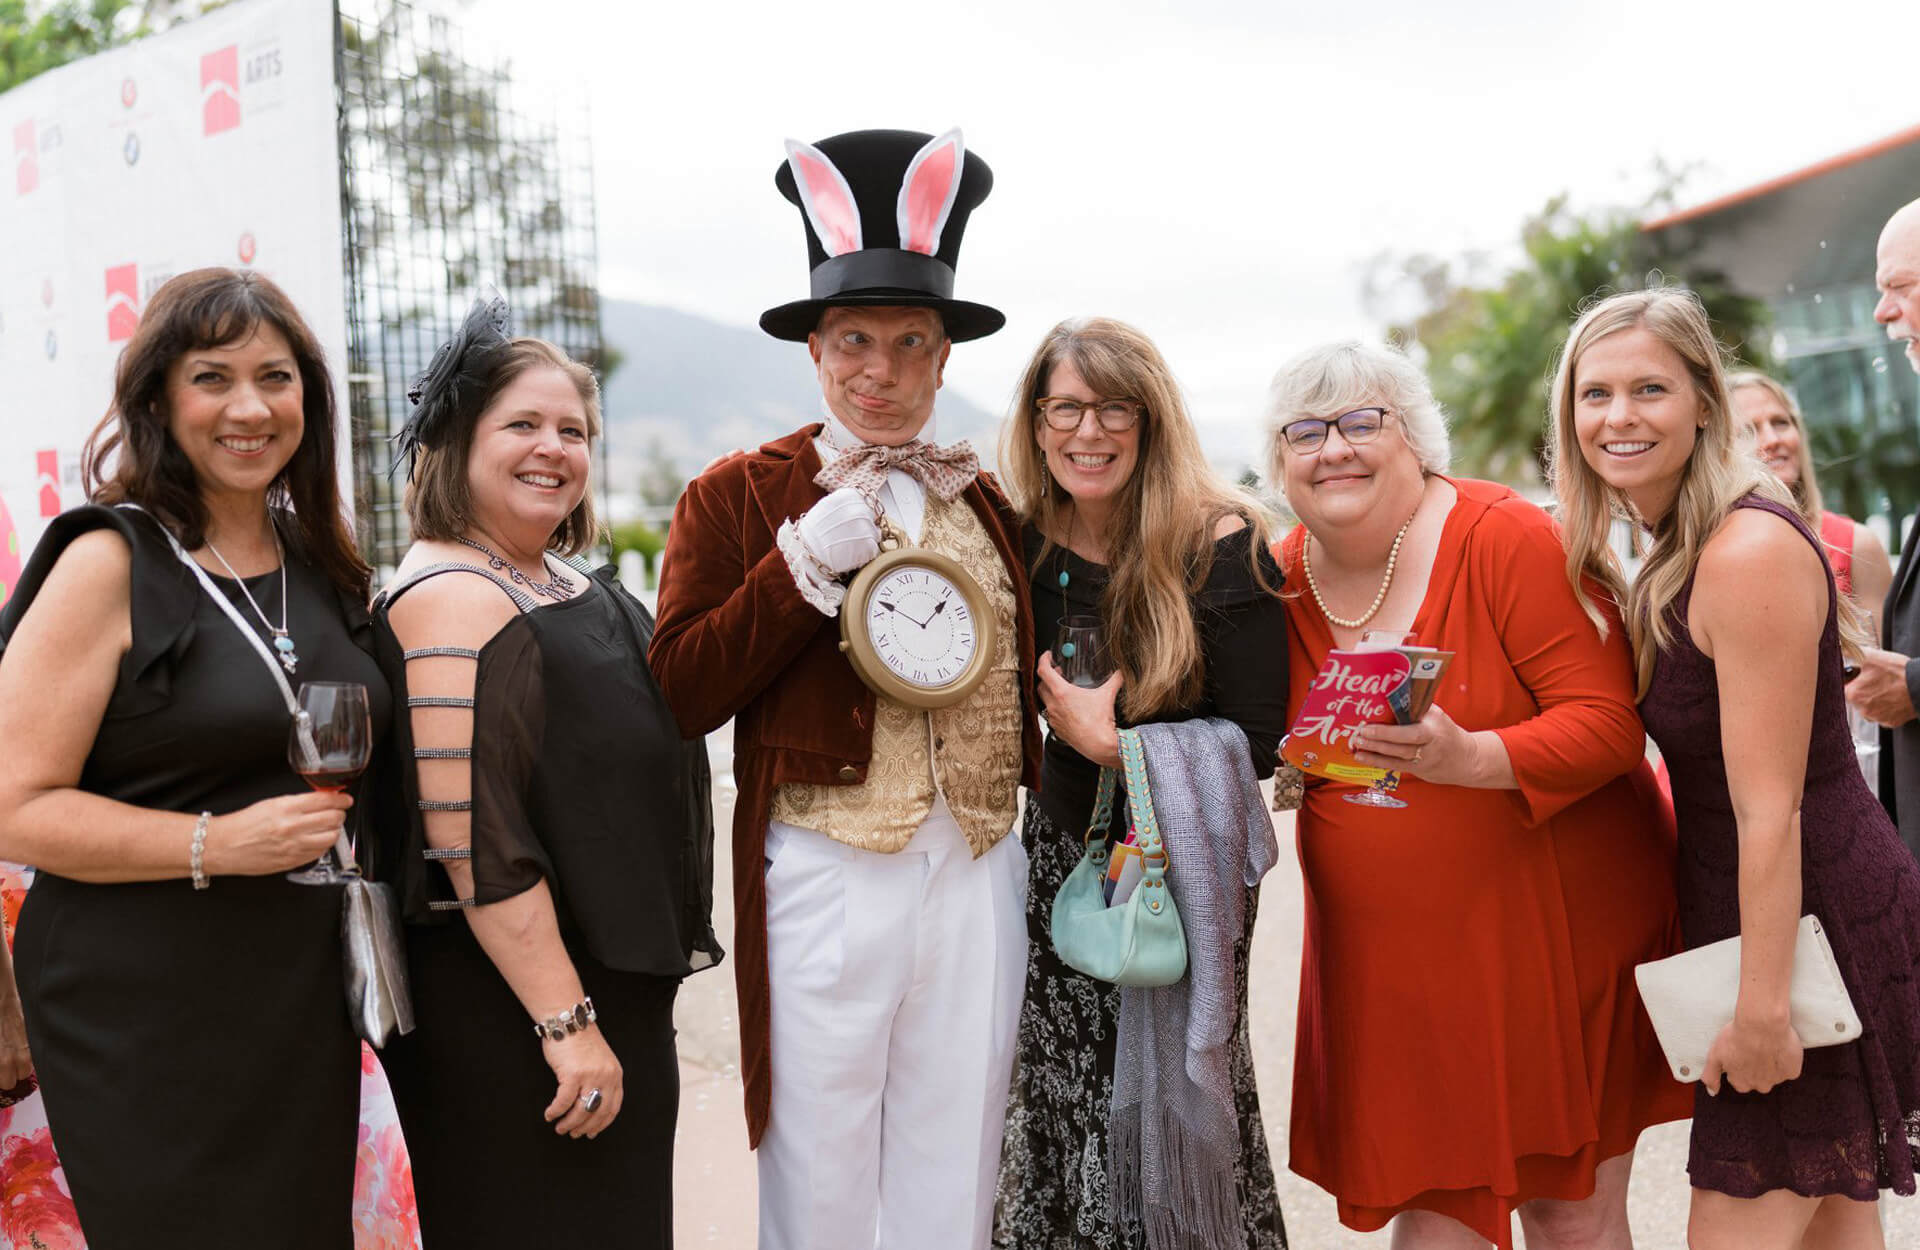 Group of people posing with the Mad Hatter at the Heart of the Arts Gala